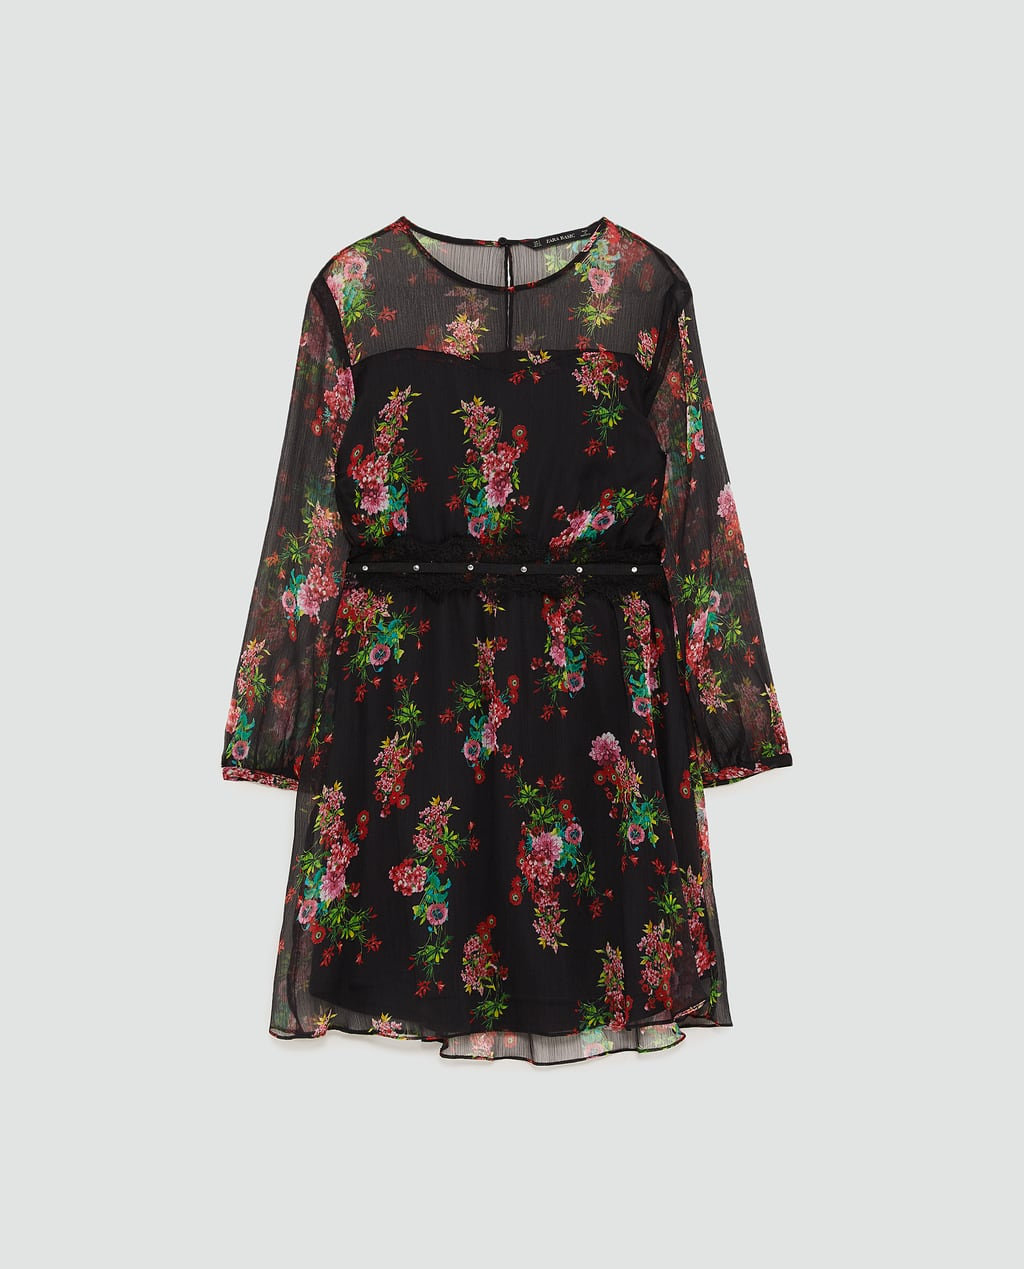 - DRESS WITH LACE TRIM AND STUDSDETAILS25.99 CAD